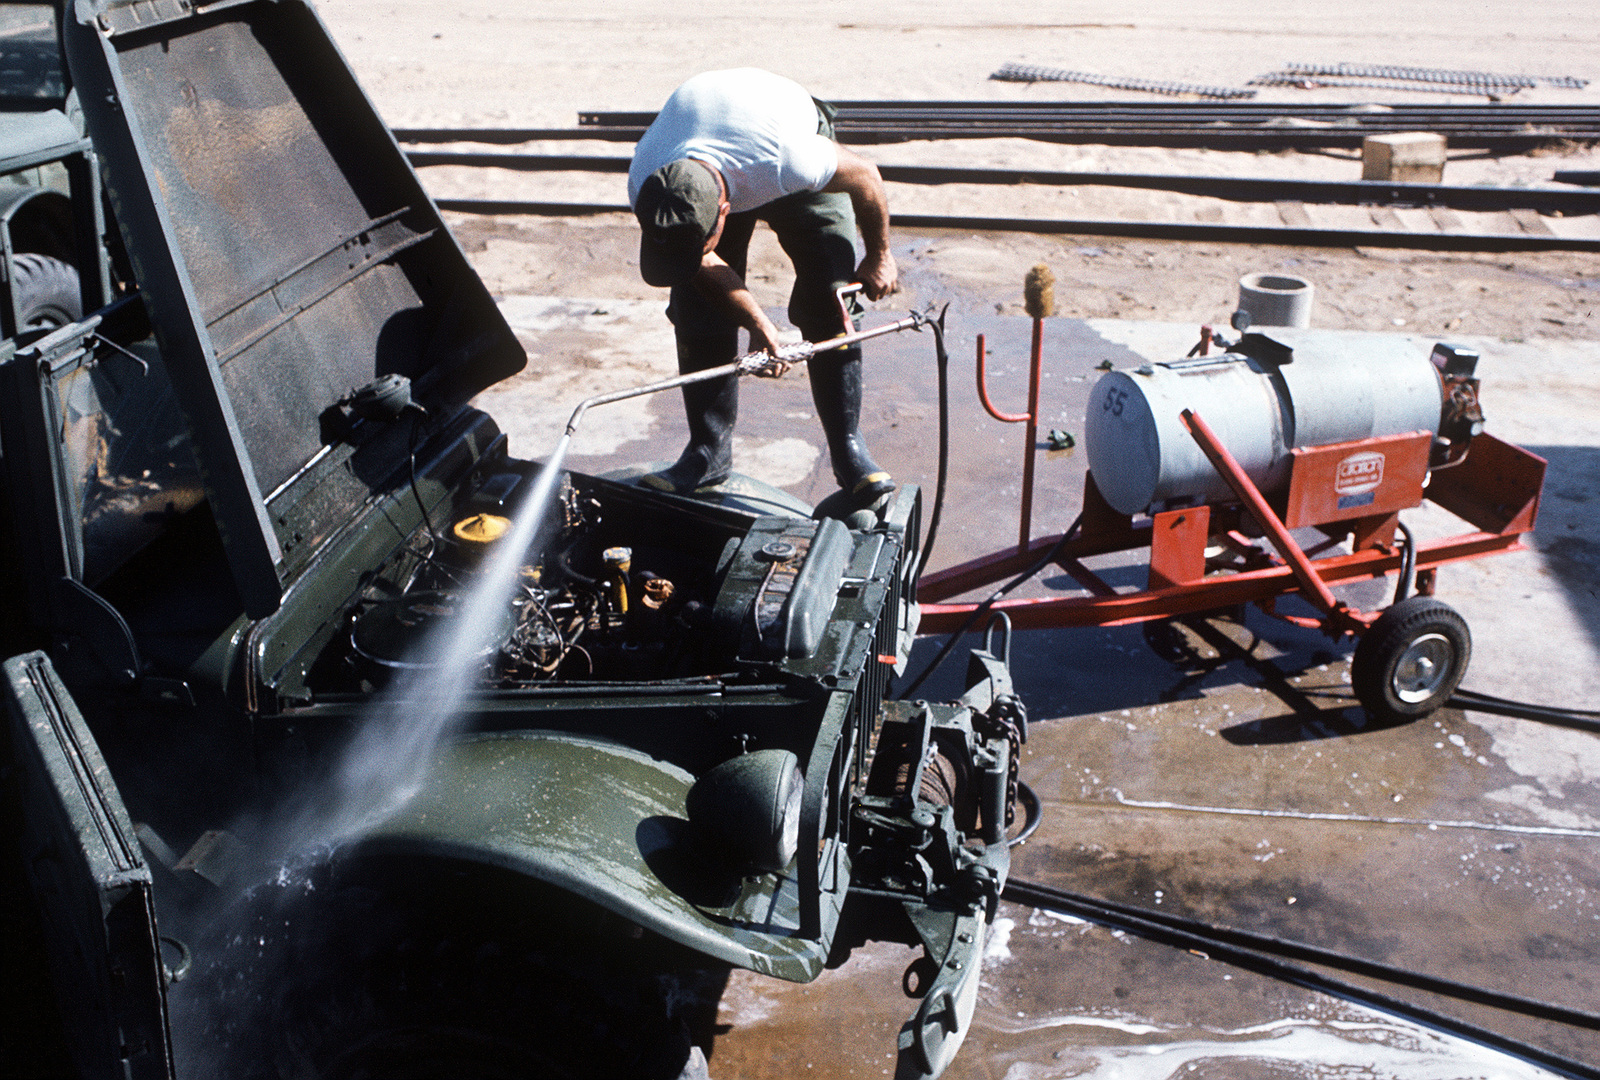 An airman cleans one of the military-design vehicles that the Air National Guard (ANG) is acquiring from the Marine Corps. The acquisition and rehabilitation project will save the Air Force about seven million dollars